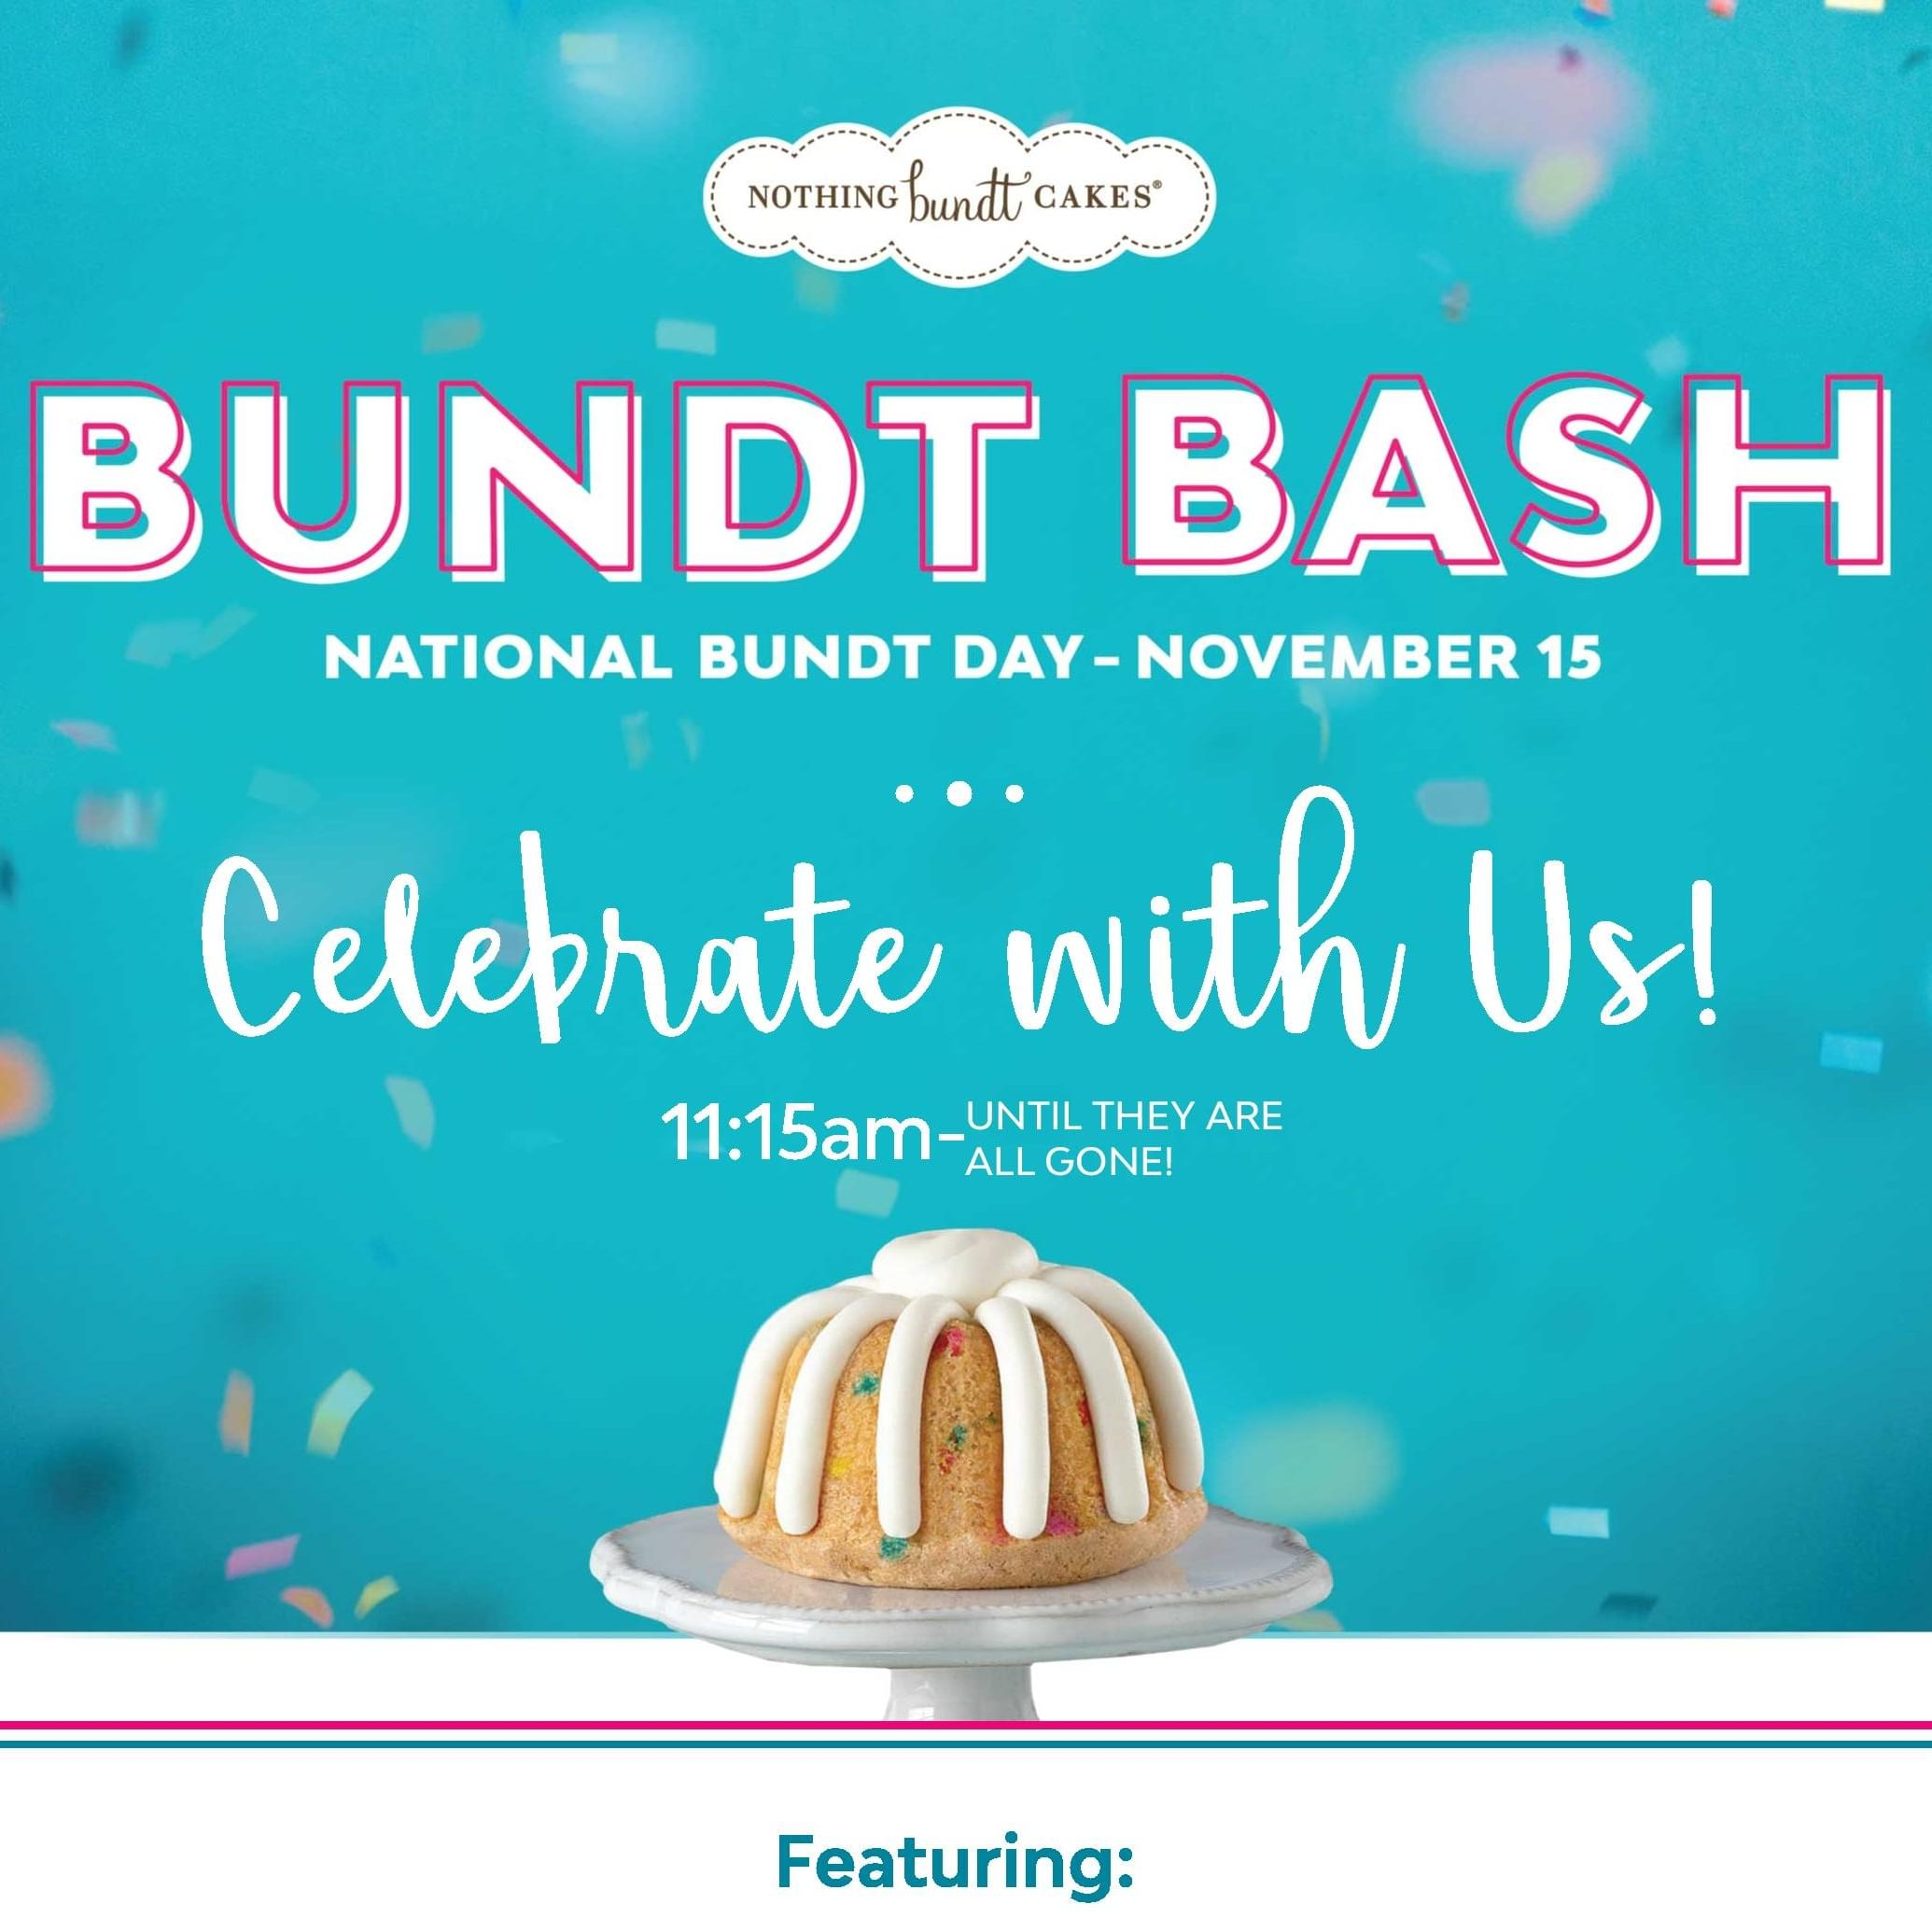 11/15: Bundt Bash at Nothing Bundt Cakes